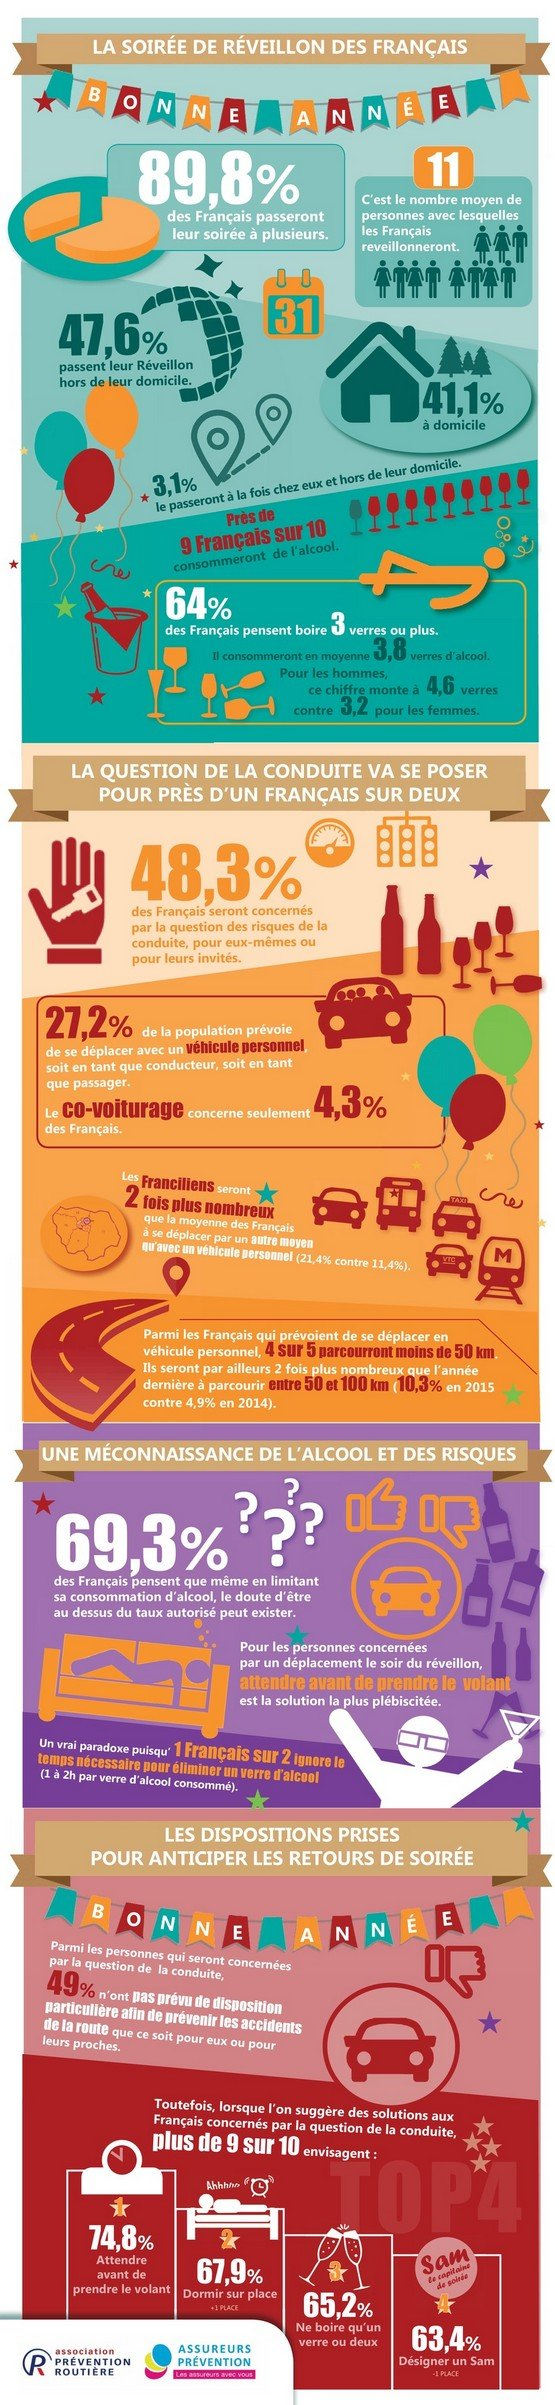 infographie_mde_2015x555